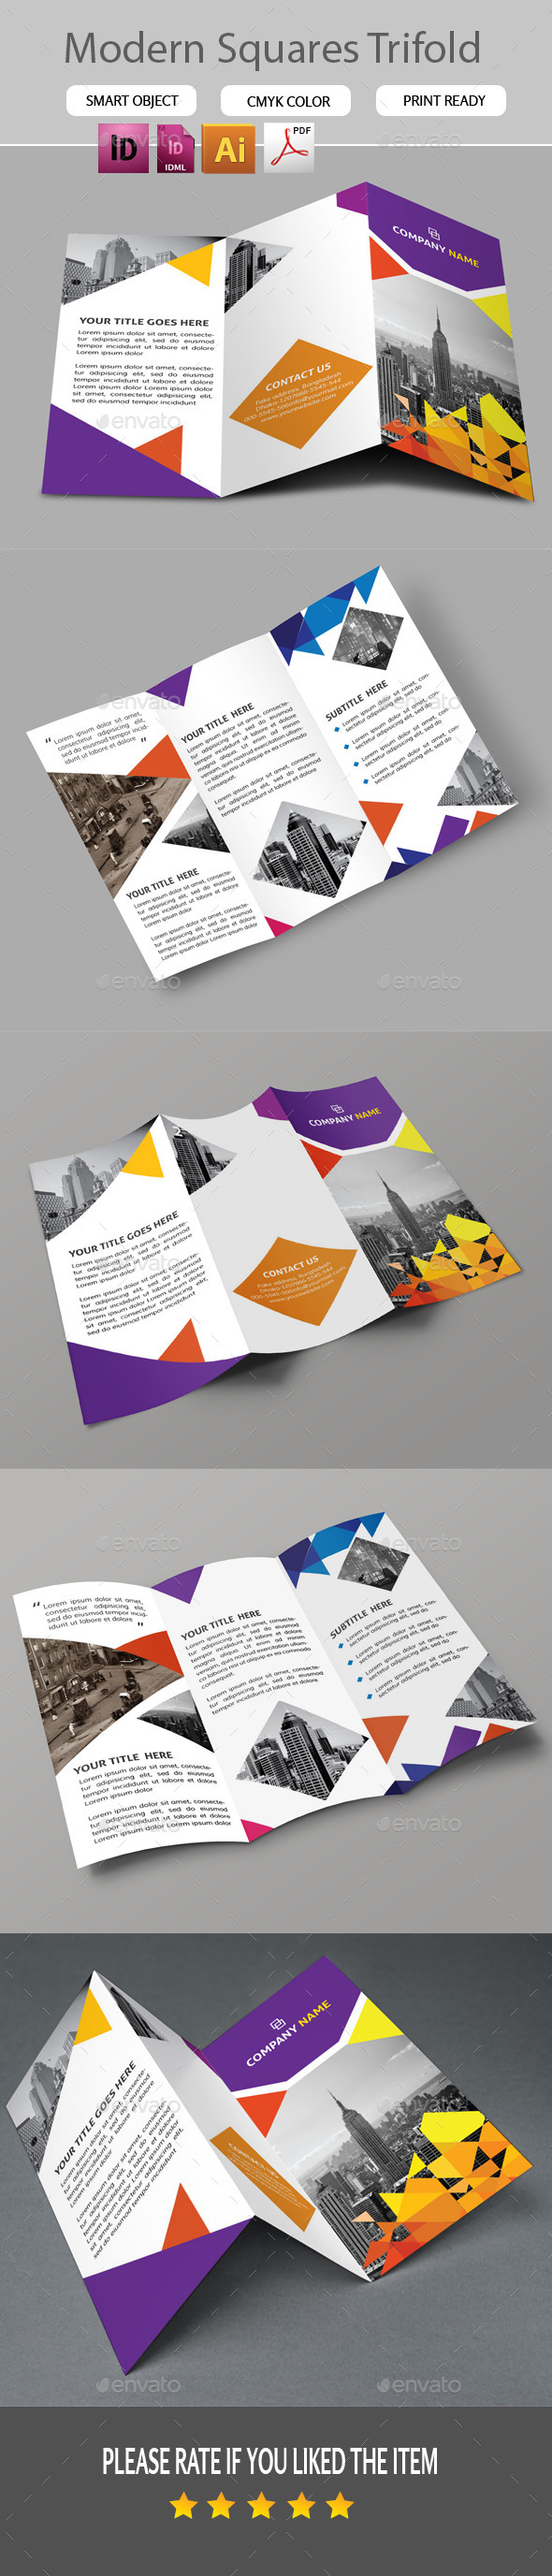 GraphicRiver Modern Squares Trifold 11258533